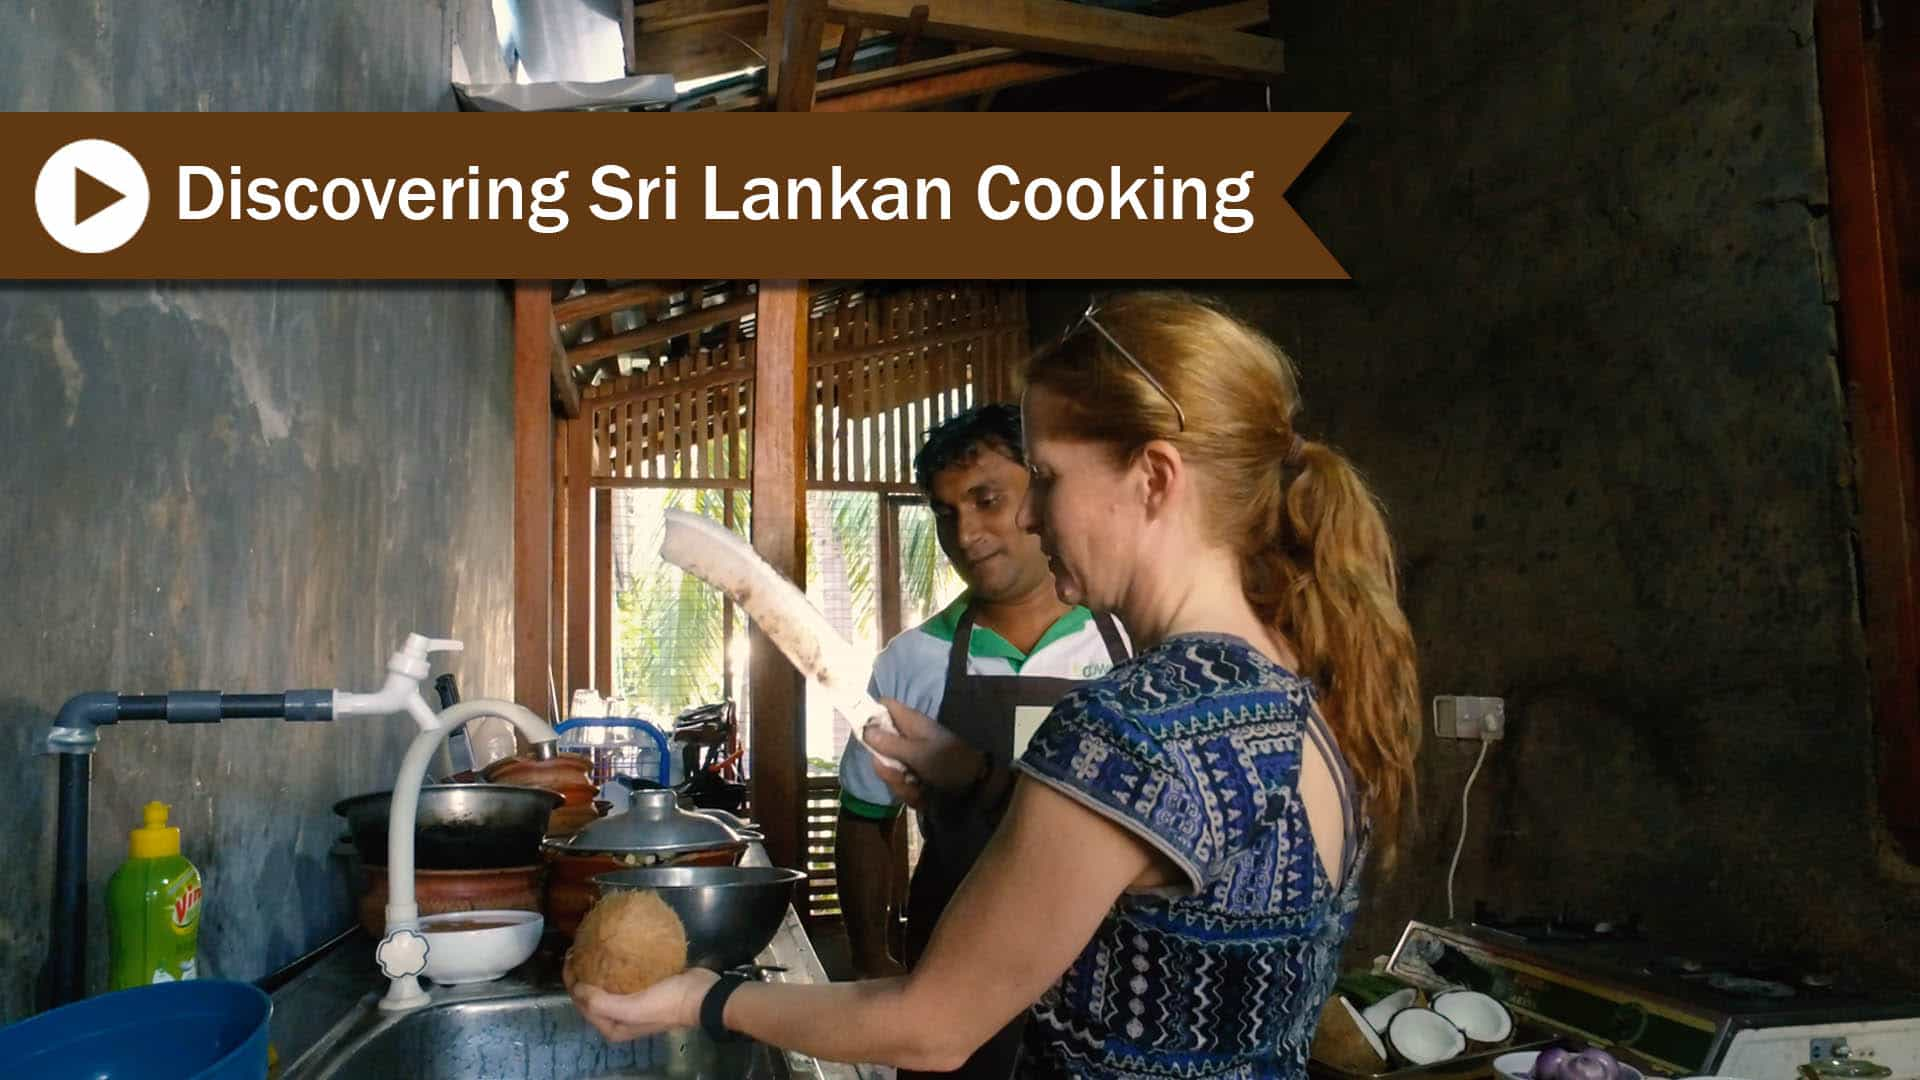 Discovering Sri Lankan Cooking